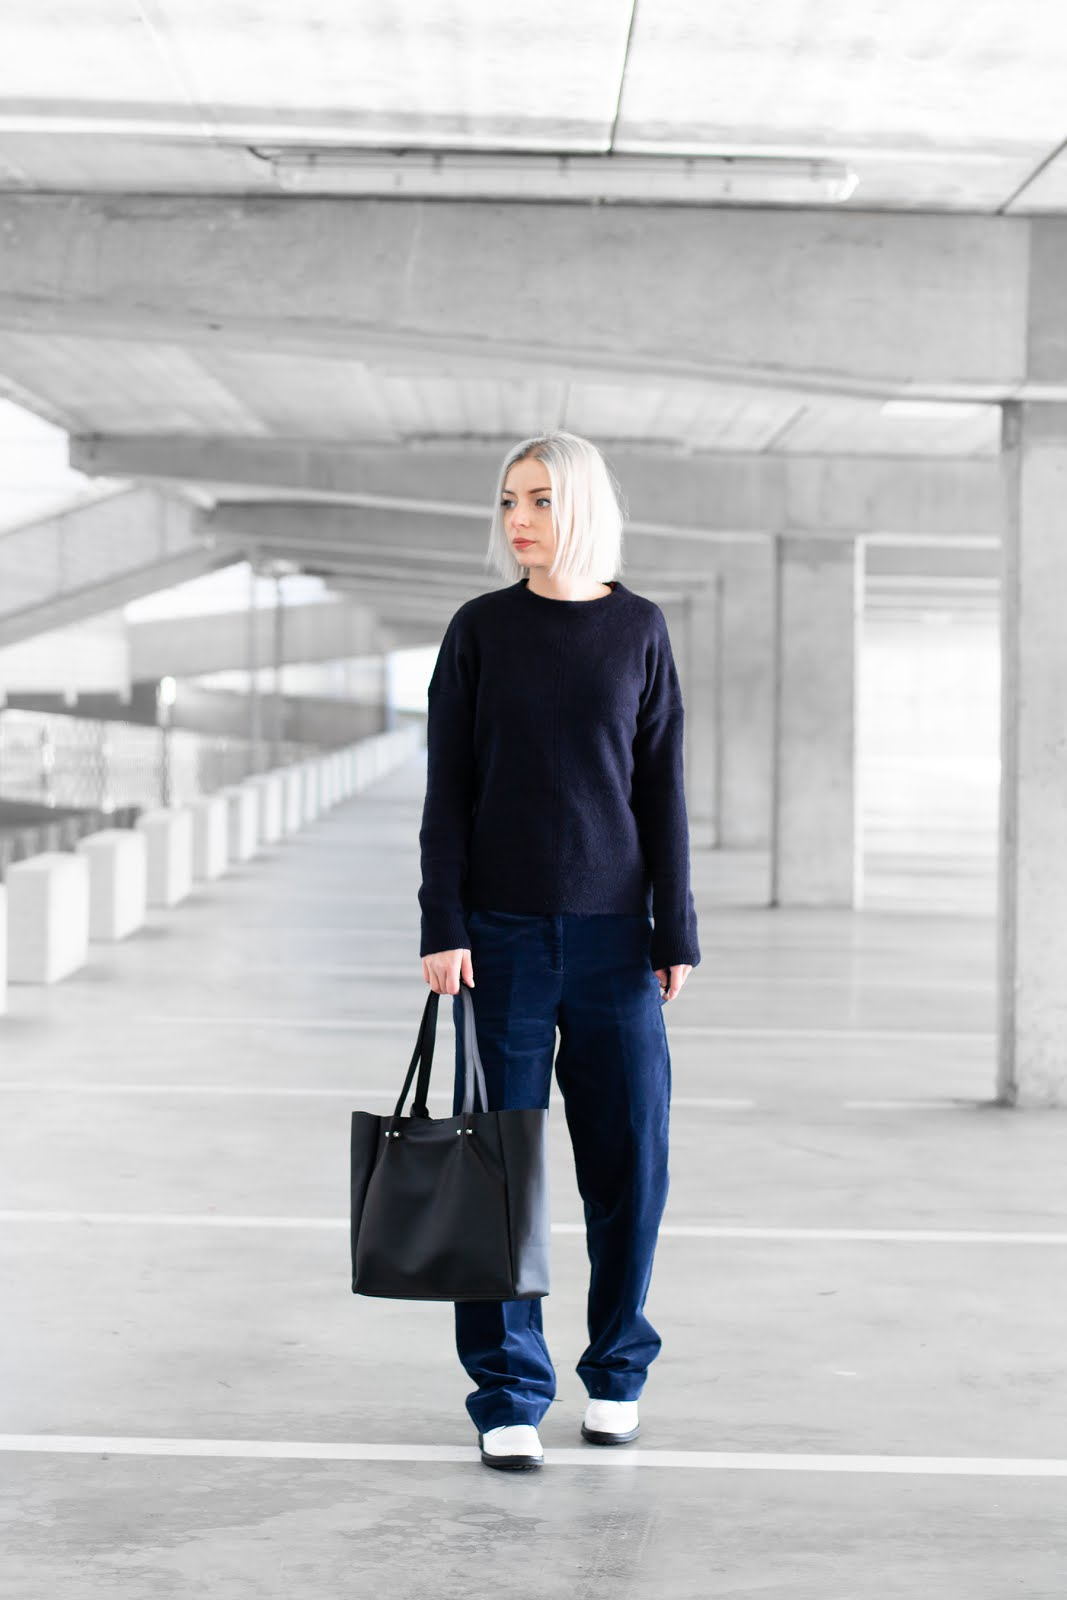 s.Oliver, wide leg trousers, wijde broek, dark blue, navy, monochrome, minimalist, outfit, street style, inspiration, belgium, 2019, trend, how to wear